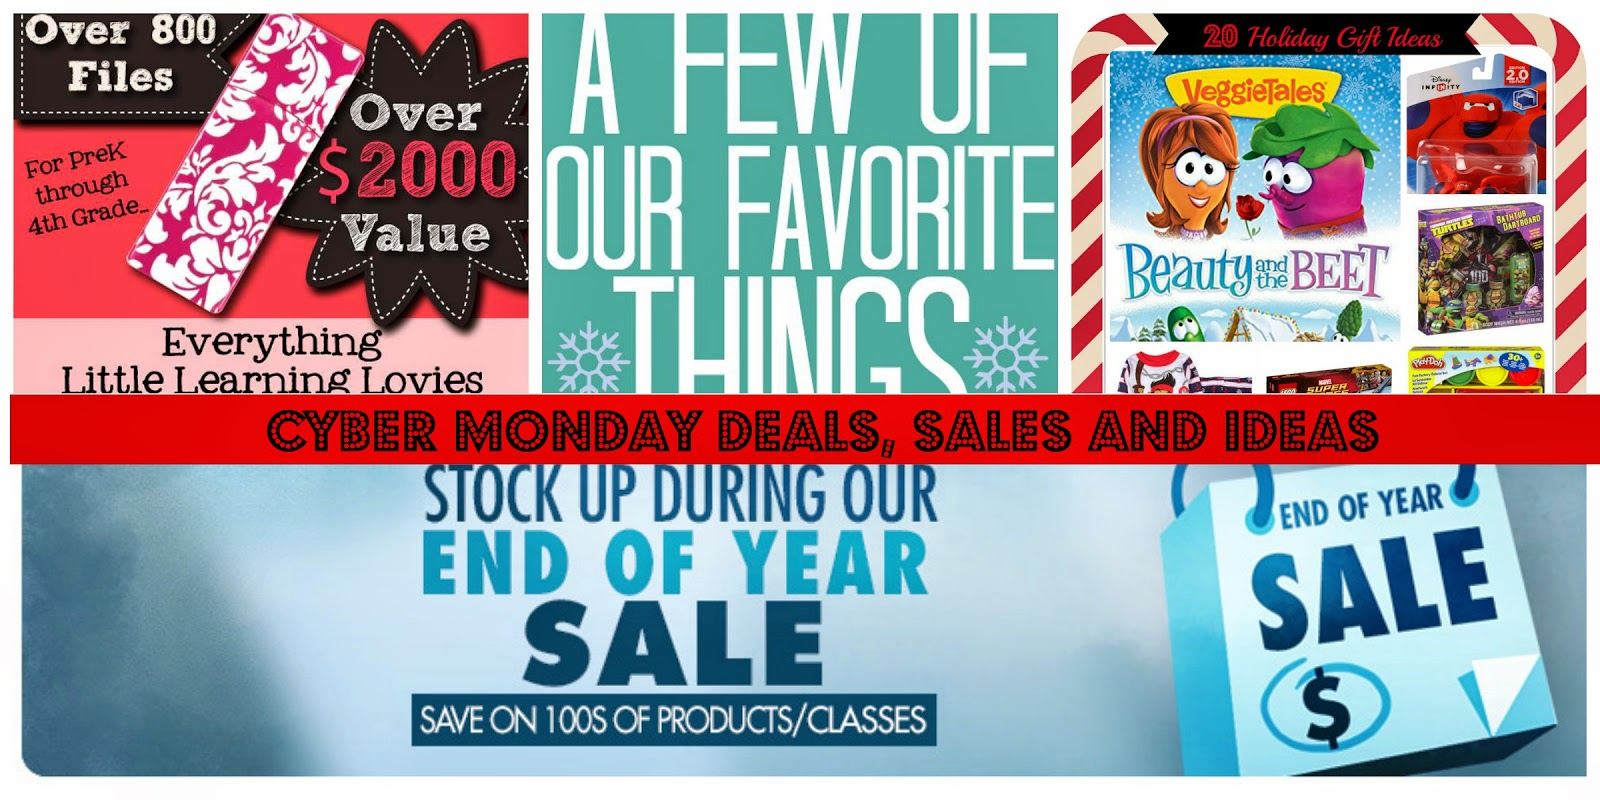 Cyber Monday 2014 Freebies, Deals, Sales and Ideas